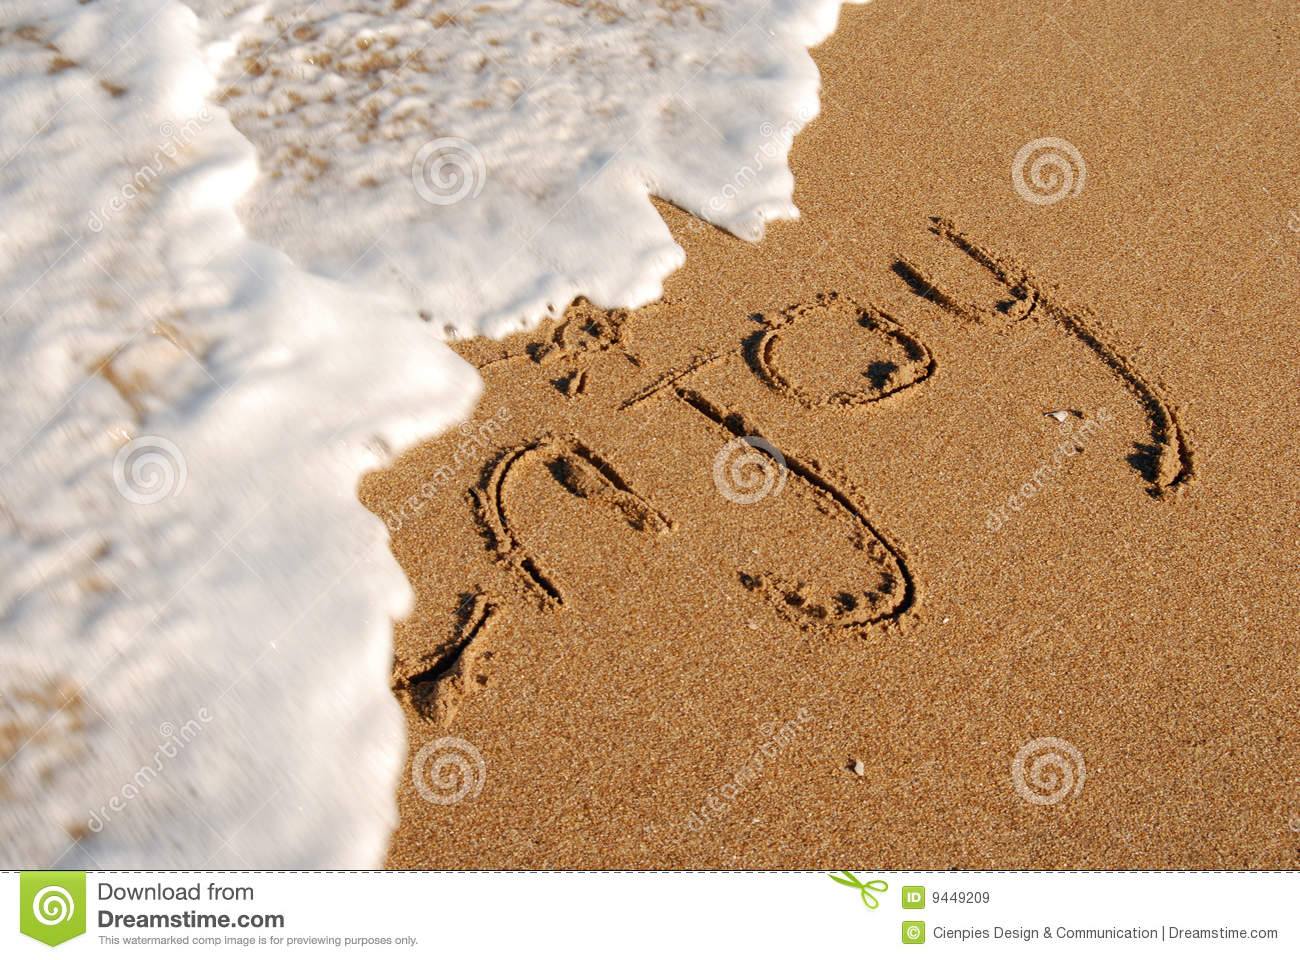 Audio Car Wallpaper Download Enjoy The Beach Message On The Shore Royalty Free Stock